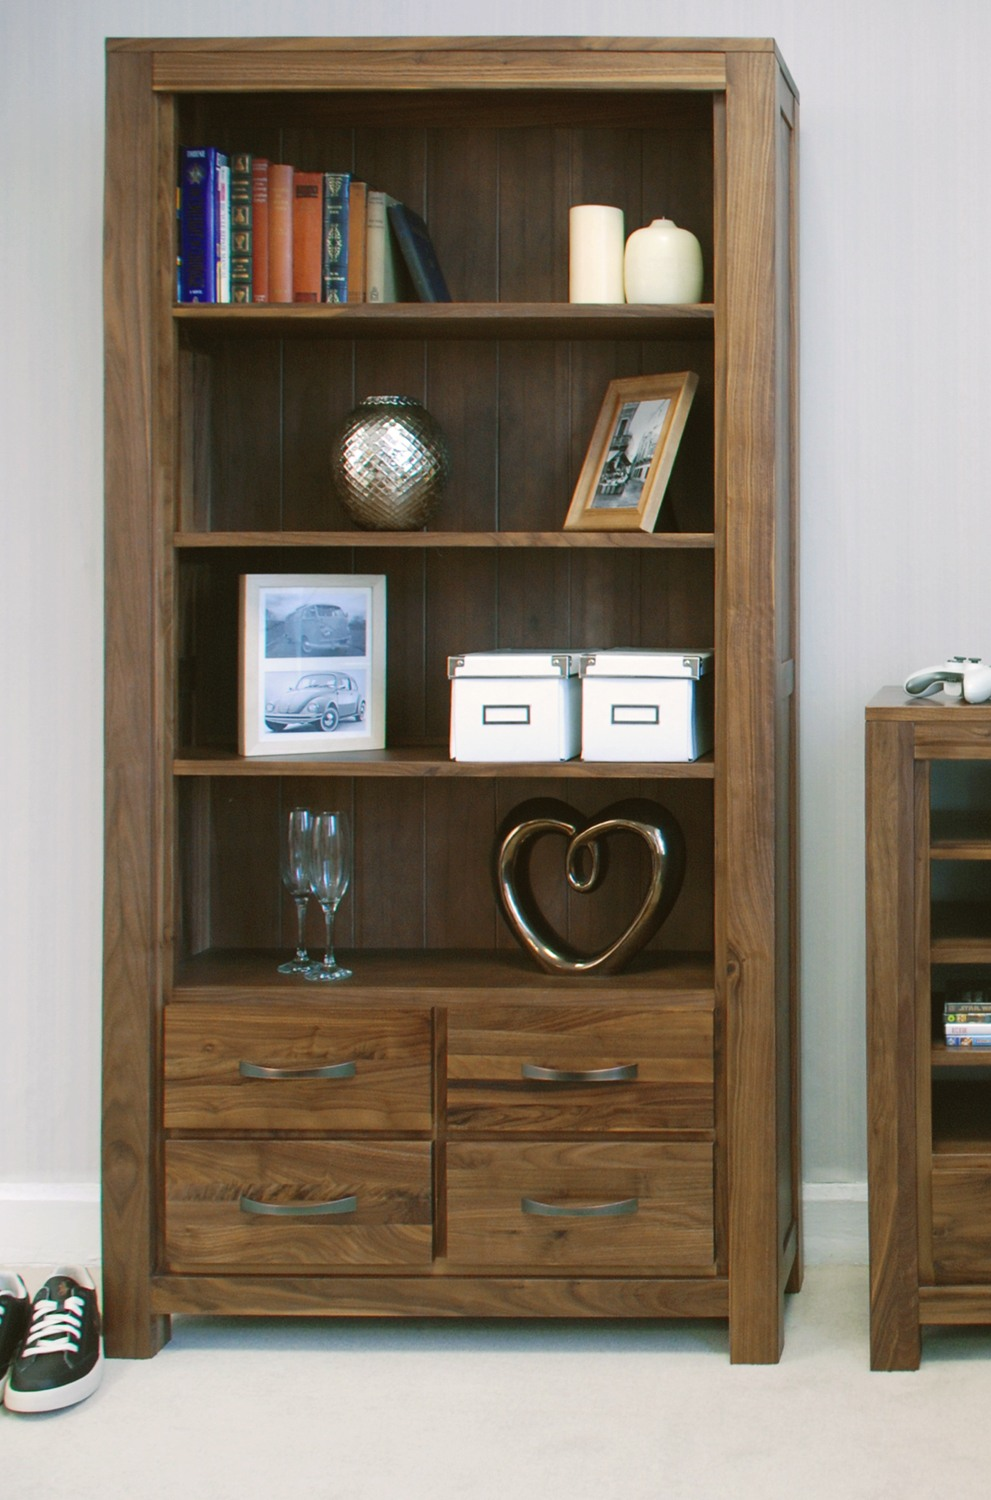 Linea solid walnut home furniture large four drawer office living room bookcase